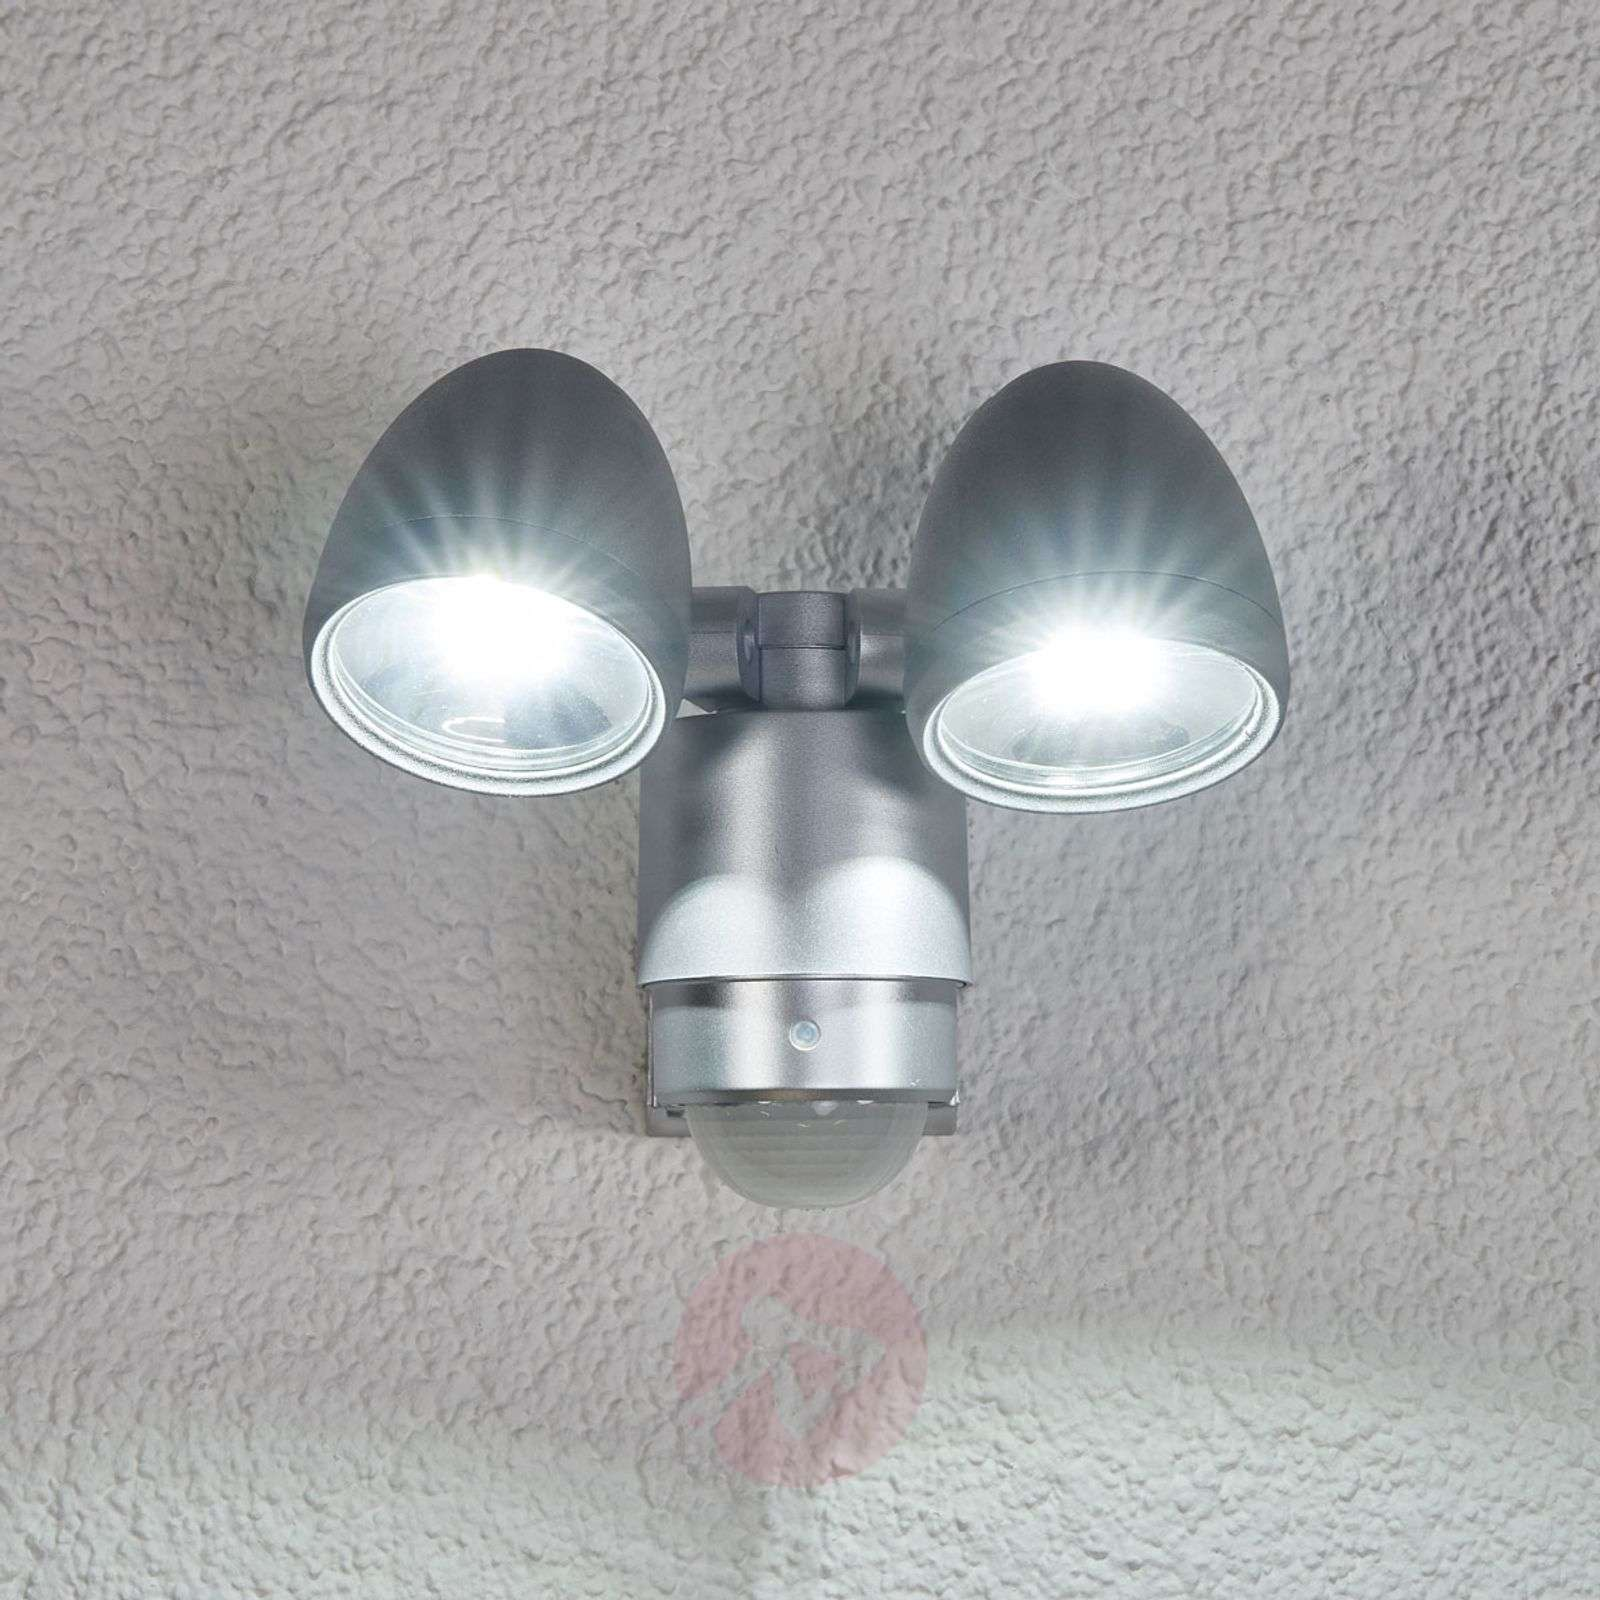 RADIAL Two Lamp LED Exterior Wall Spot-4014128-03